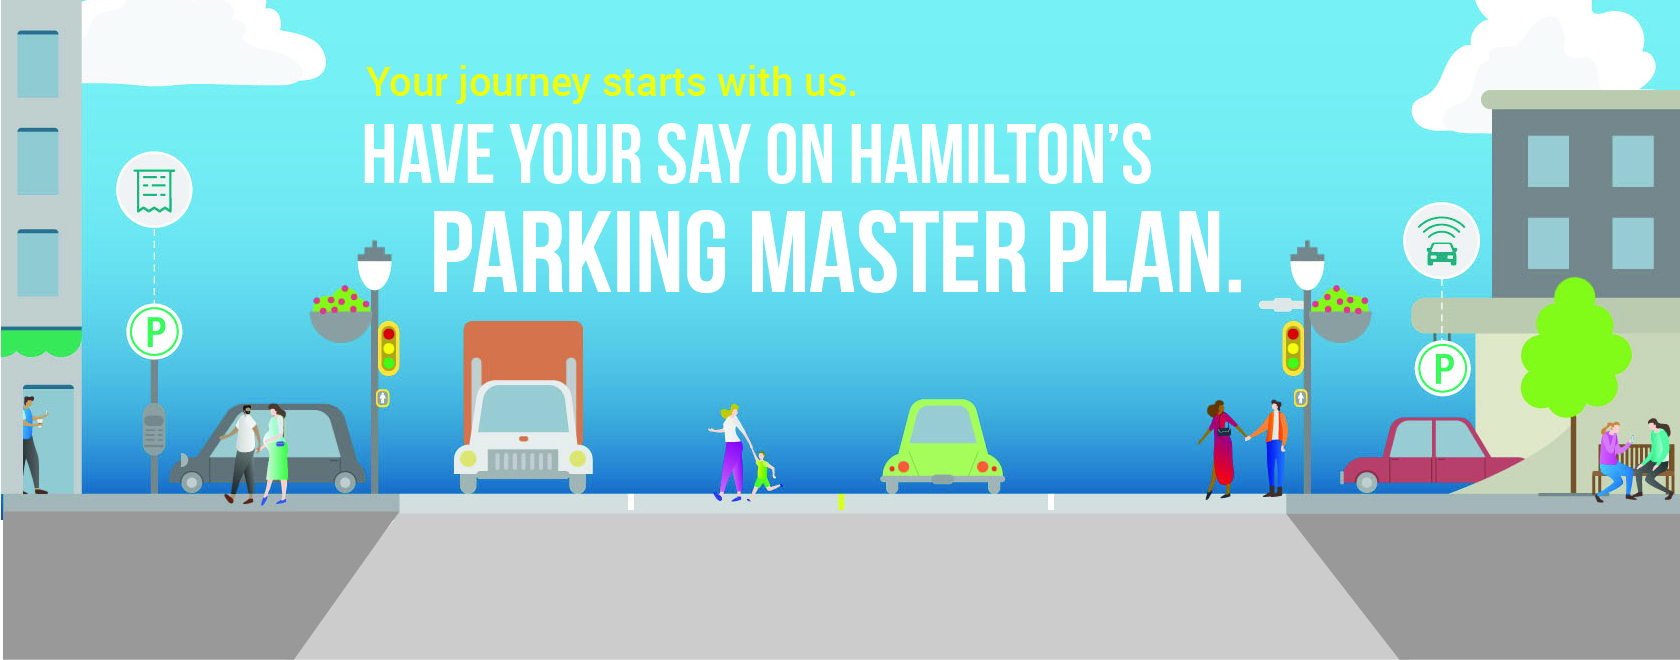 Promotion for Parking Master Plan Engagement